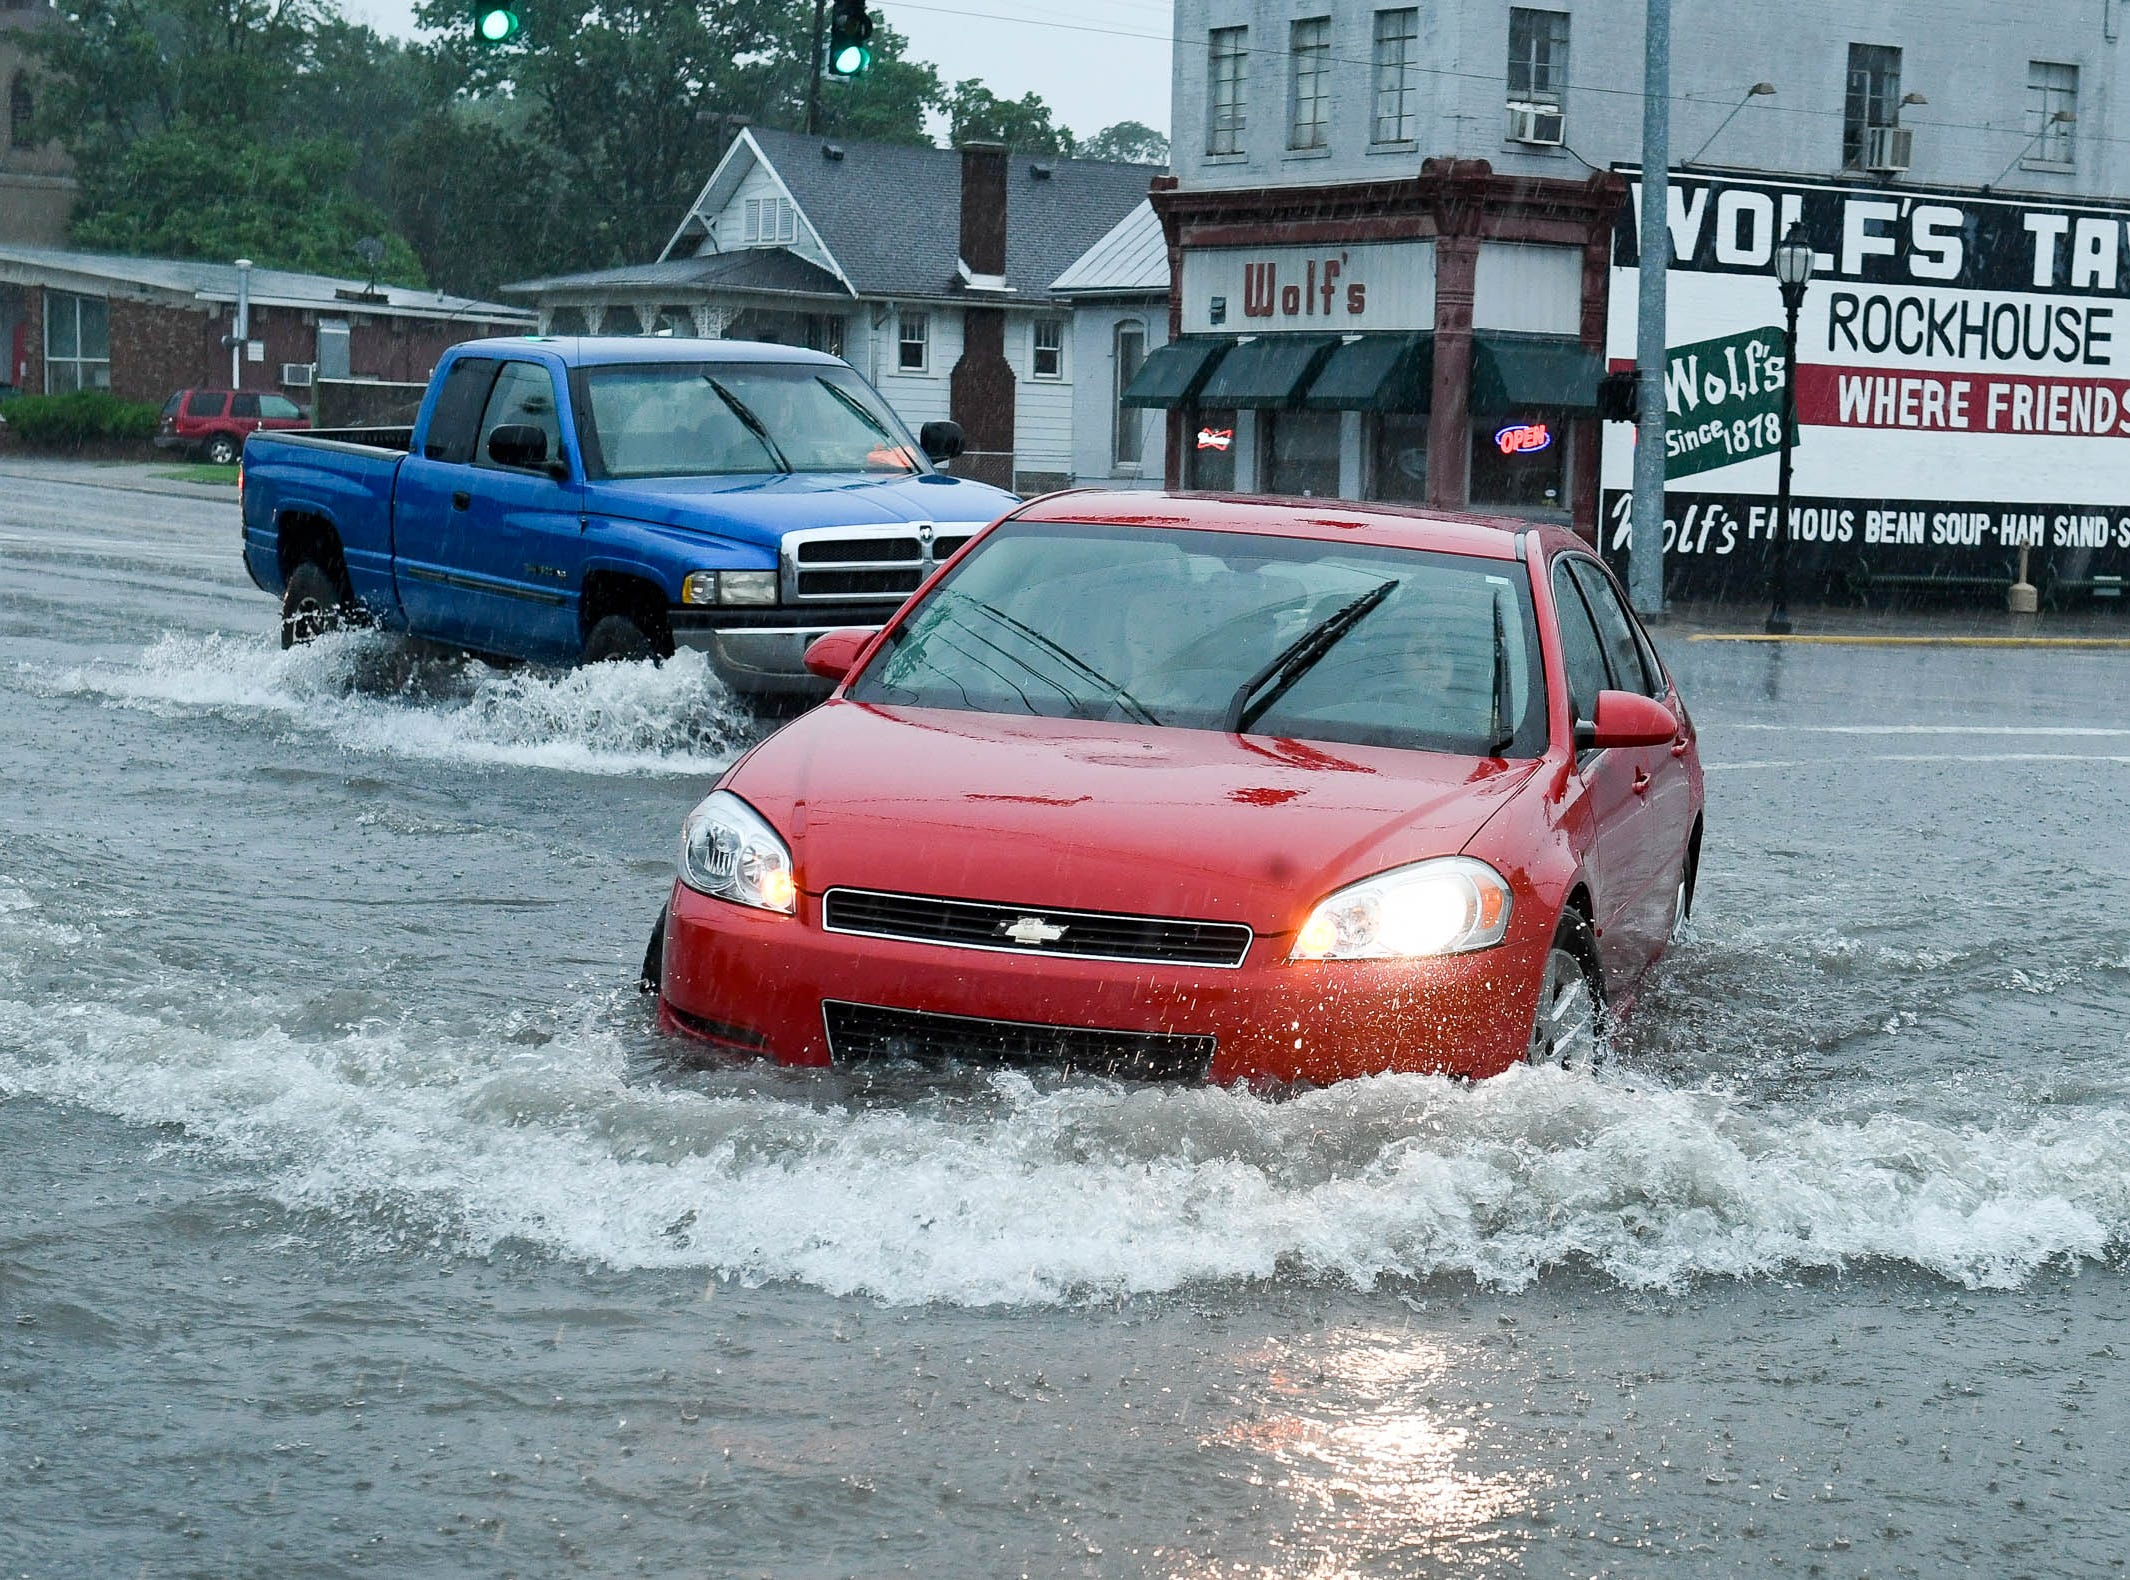 Traffic negotiates high water near the intersection of South Green and First Streets after a mid-day severe thunderstorm unleashed torrential rain and wind gusts reportedly near sixty miles per hour on downtown Henderson Thursday, May 31, 2018.